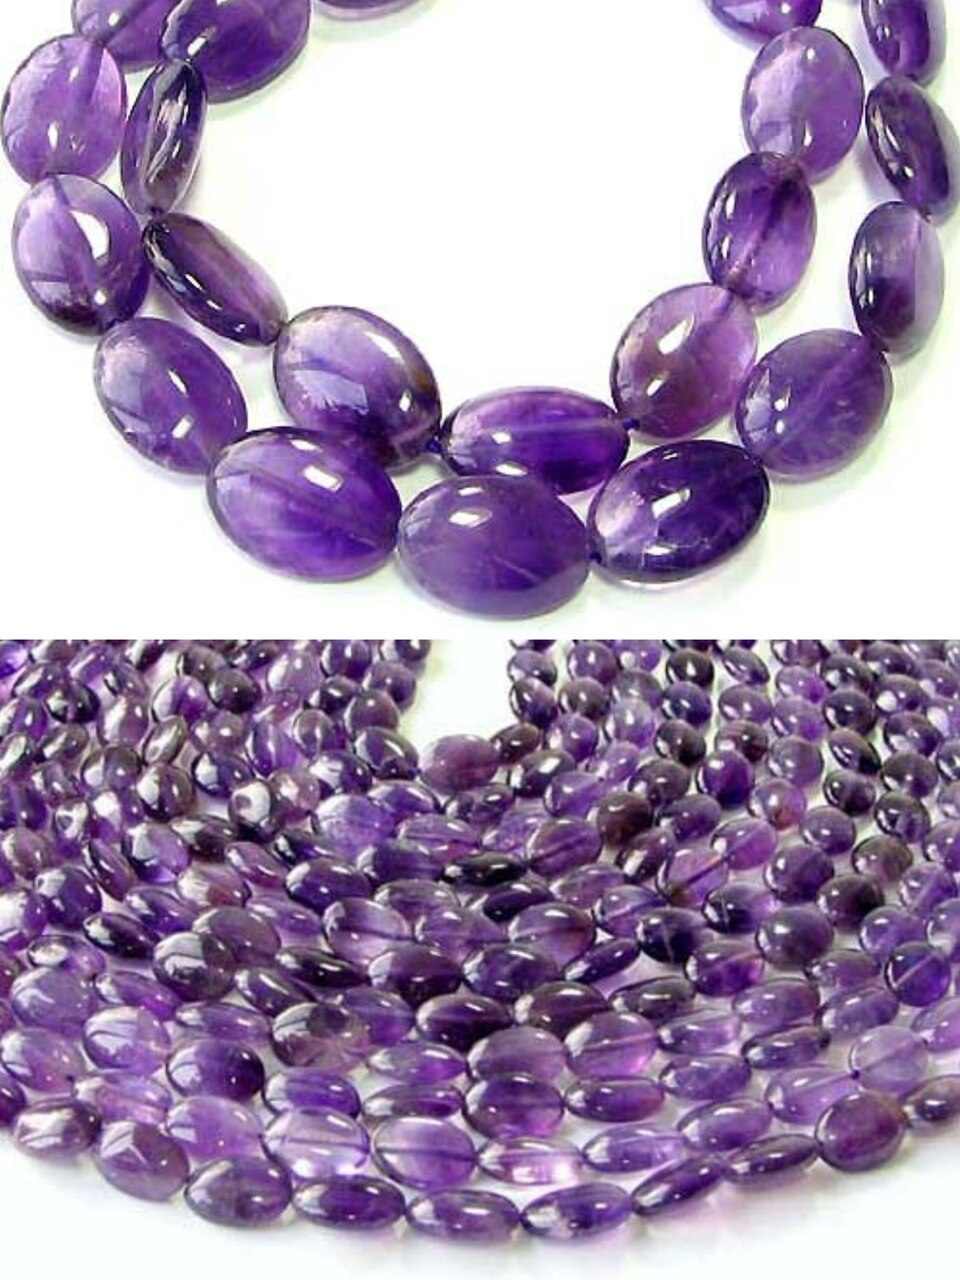 3 Yummy Natural Amethyst 14x10mm Oval Beads 009161 - PremiumBead